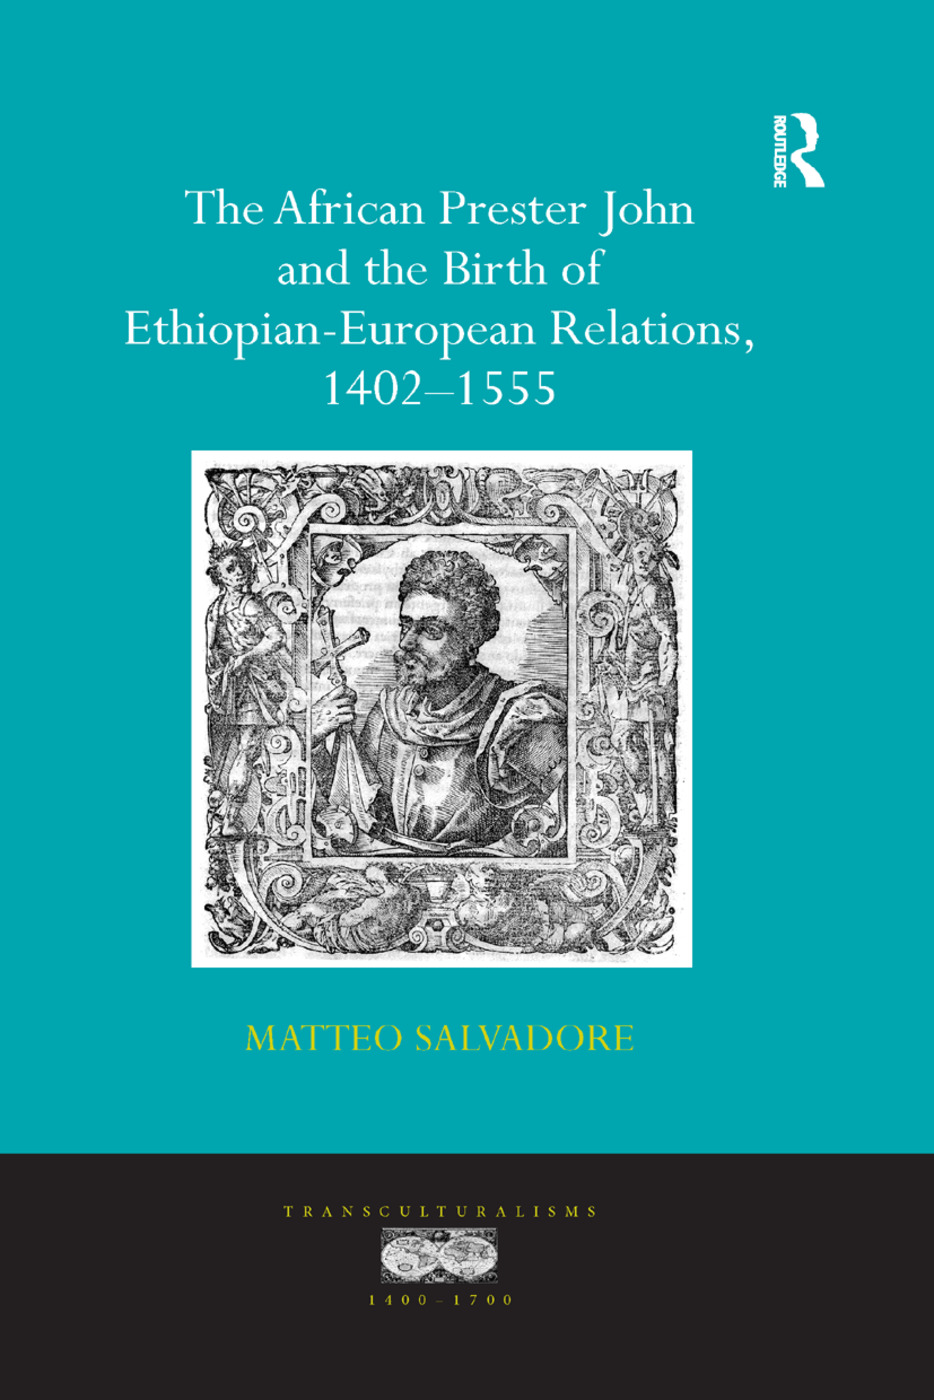 The African Prester John and the Birth of Ethiopian-European Relations, 1402-1555